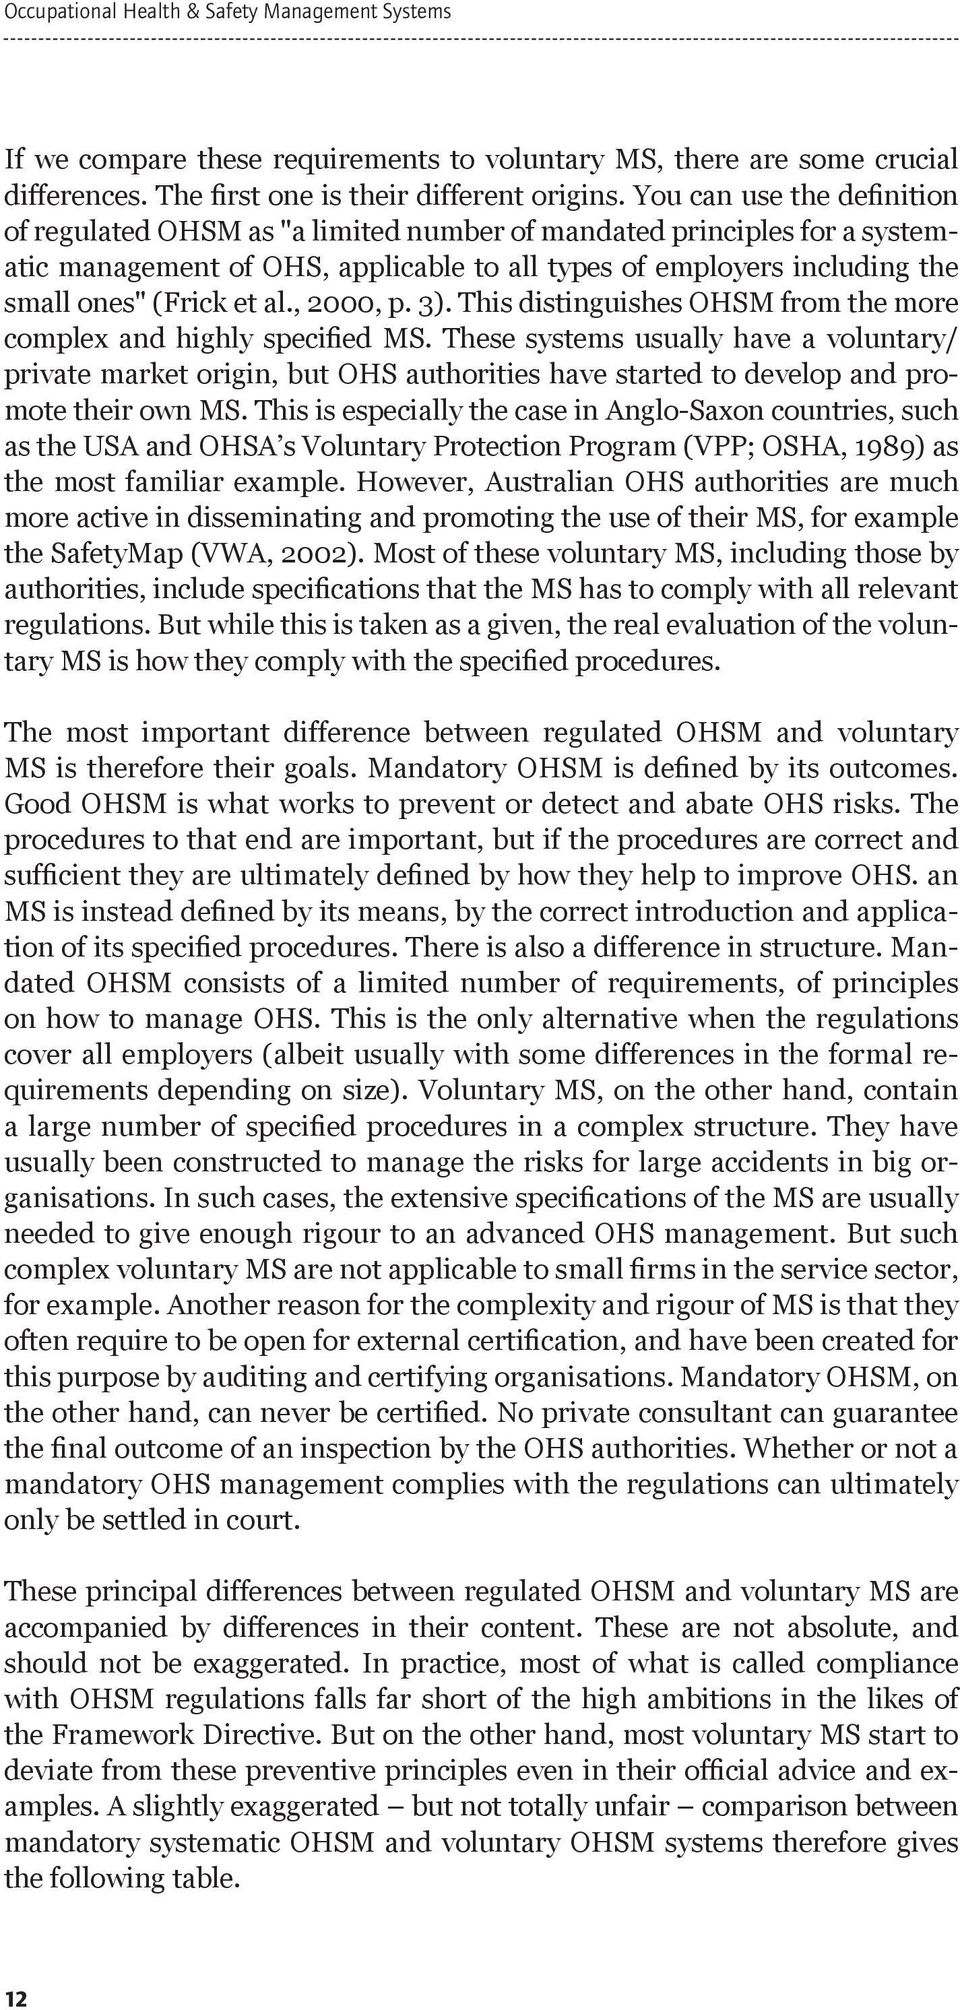 al., 2000, p. 3). This distinguishes OHSM from the more complex and highly specified MS.